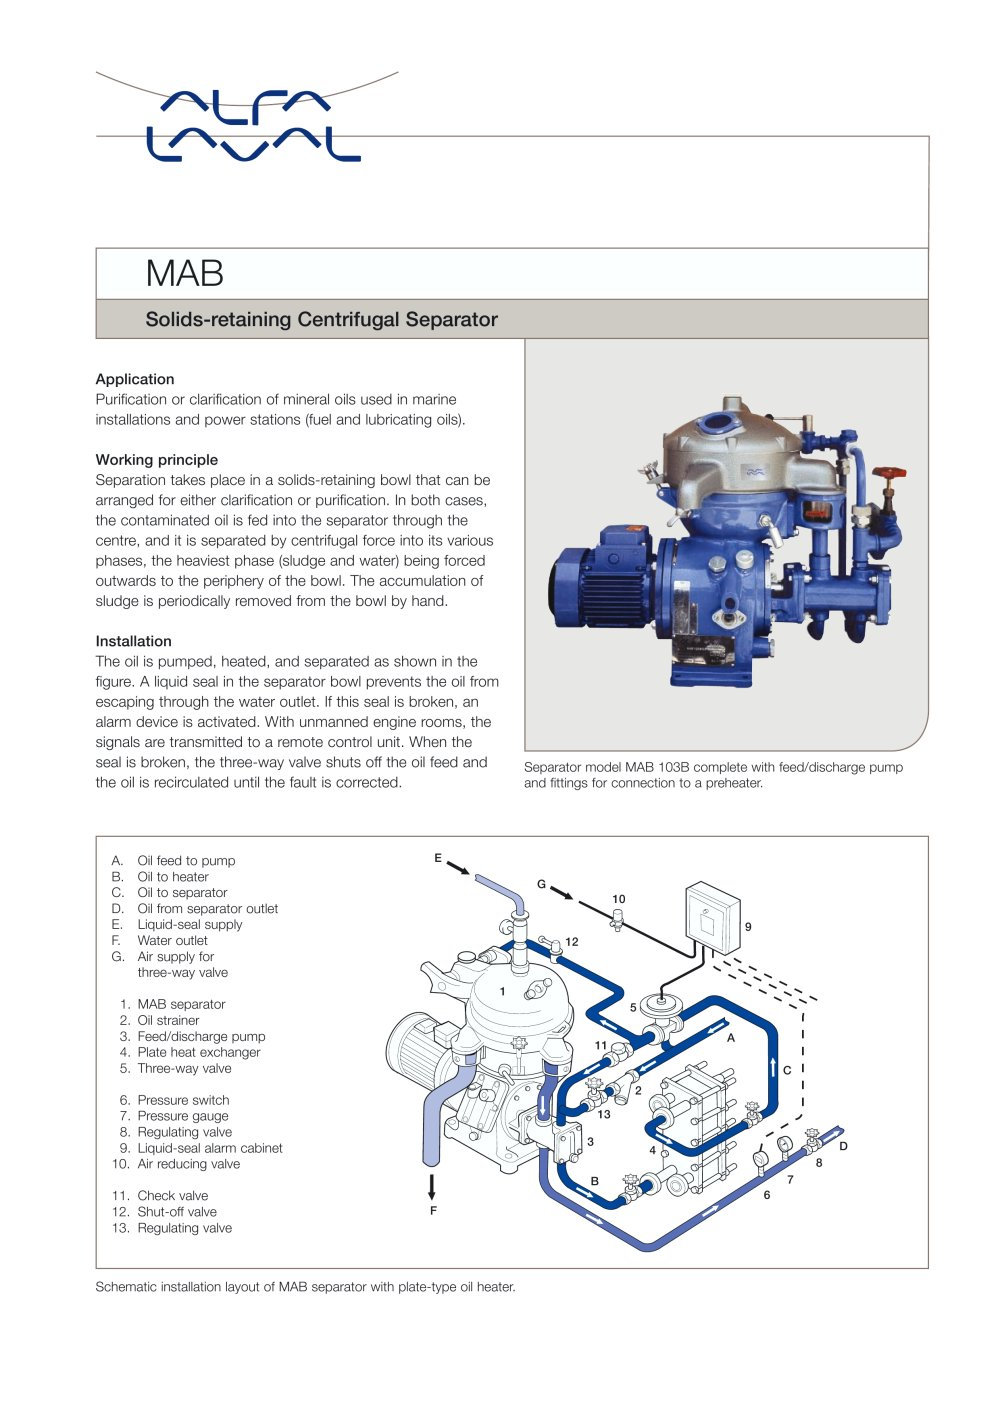 medium resolution of mab solids retaining centrifugal separator 1 2 pages